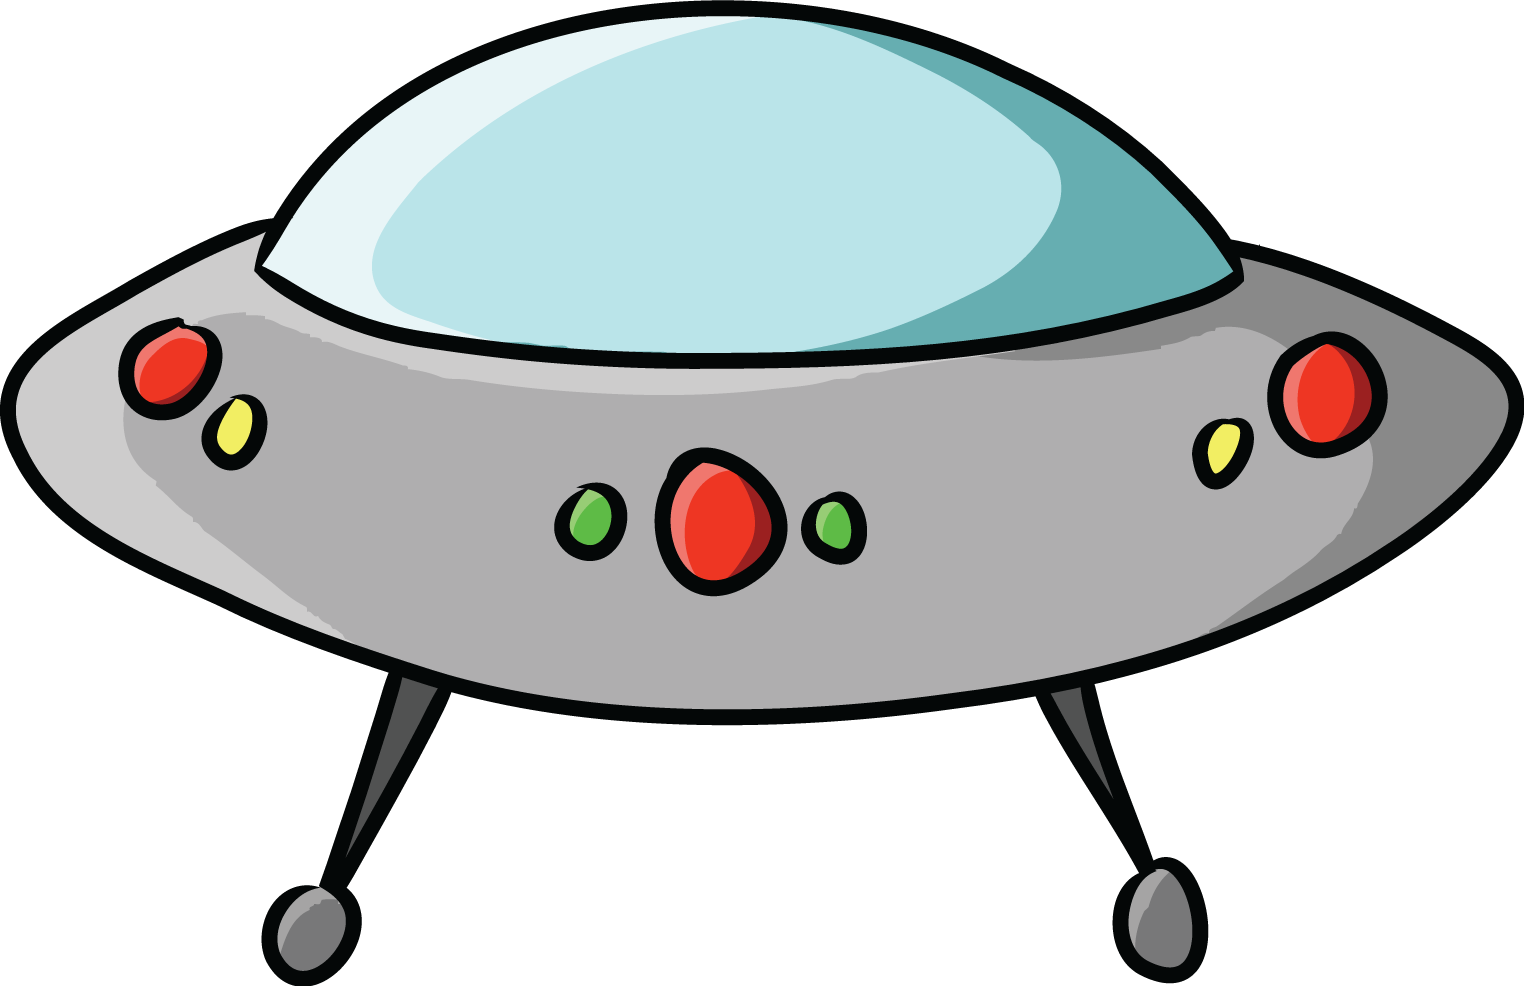 UFO clipart #1, Download drawings